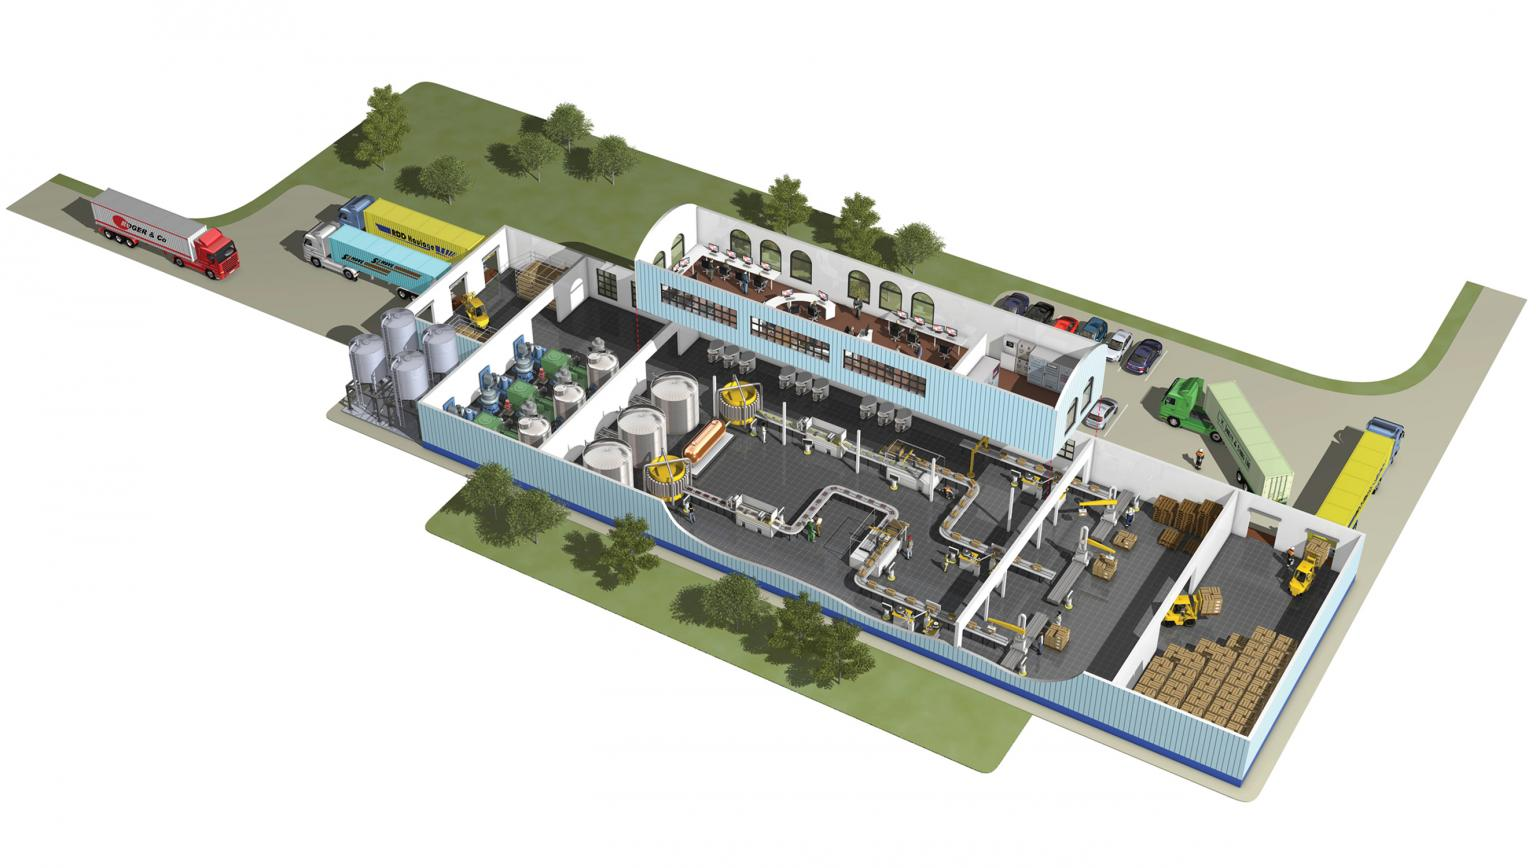 Industry 4.0 is leading to greater communication between machines and decentralised/local processing of data. The result is smart factories, able to manage their own service and maintenance requirements and adapt instantly to new production requirements. Source: Mitsubishi Electric Europe BV